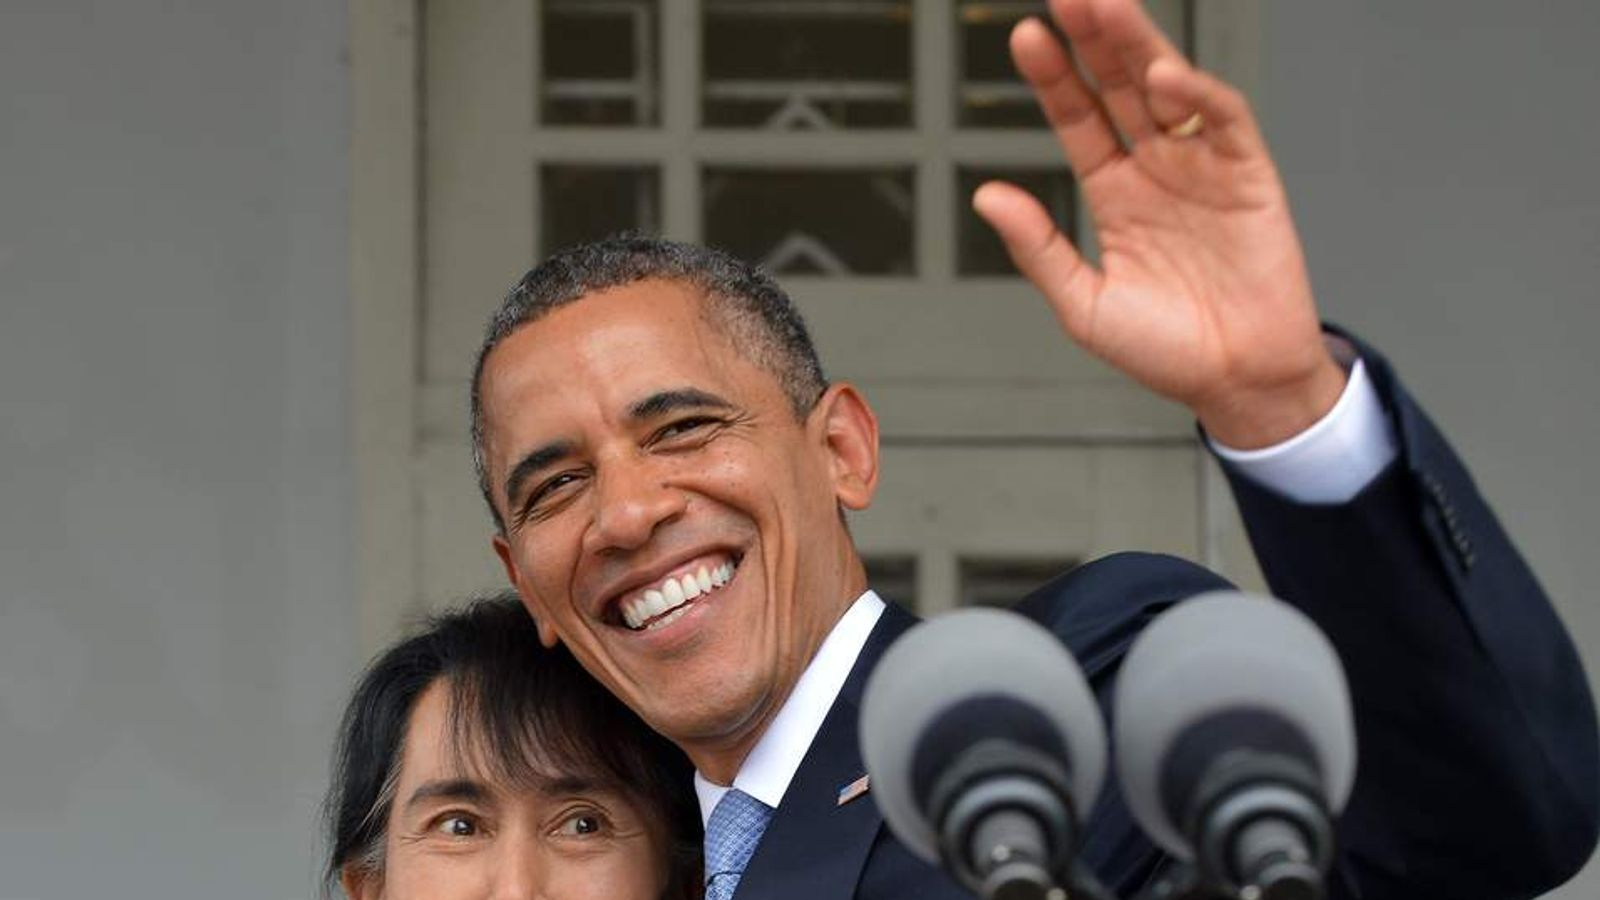 Obama (R) waves holding Myanmar opposition leader Aung San Suu Kyi after making a speech at her residence